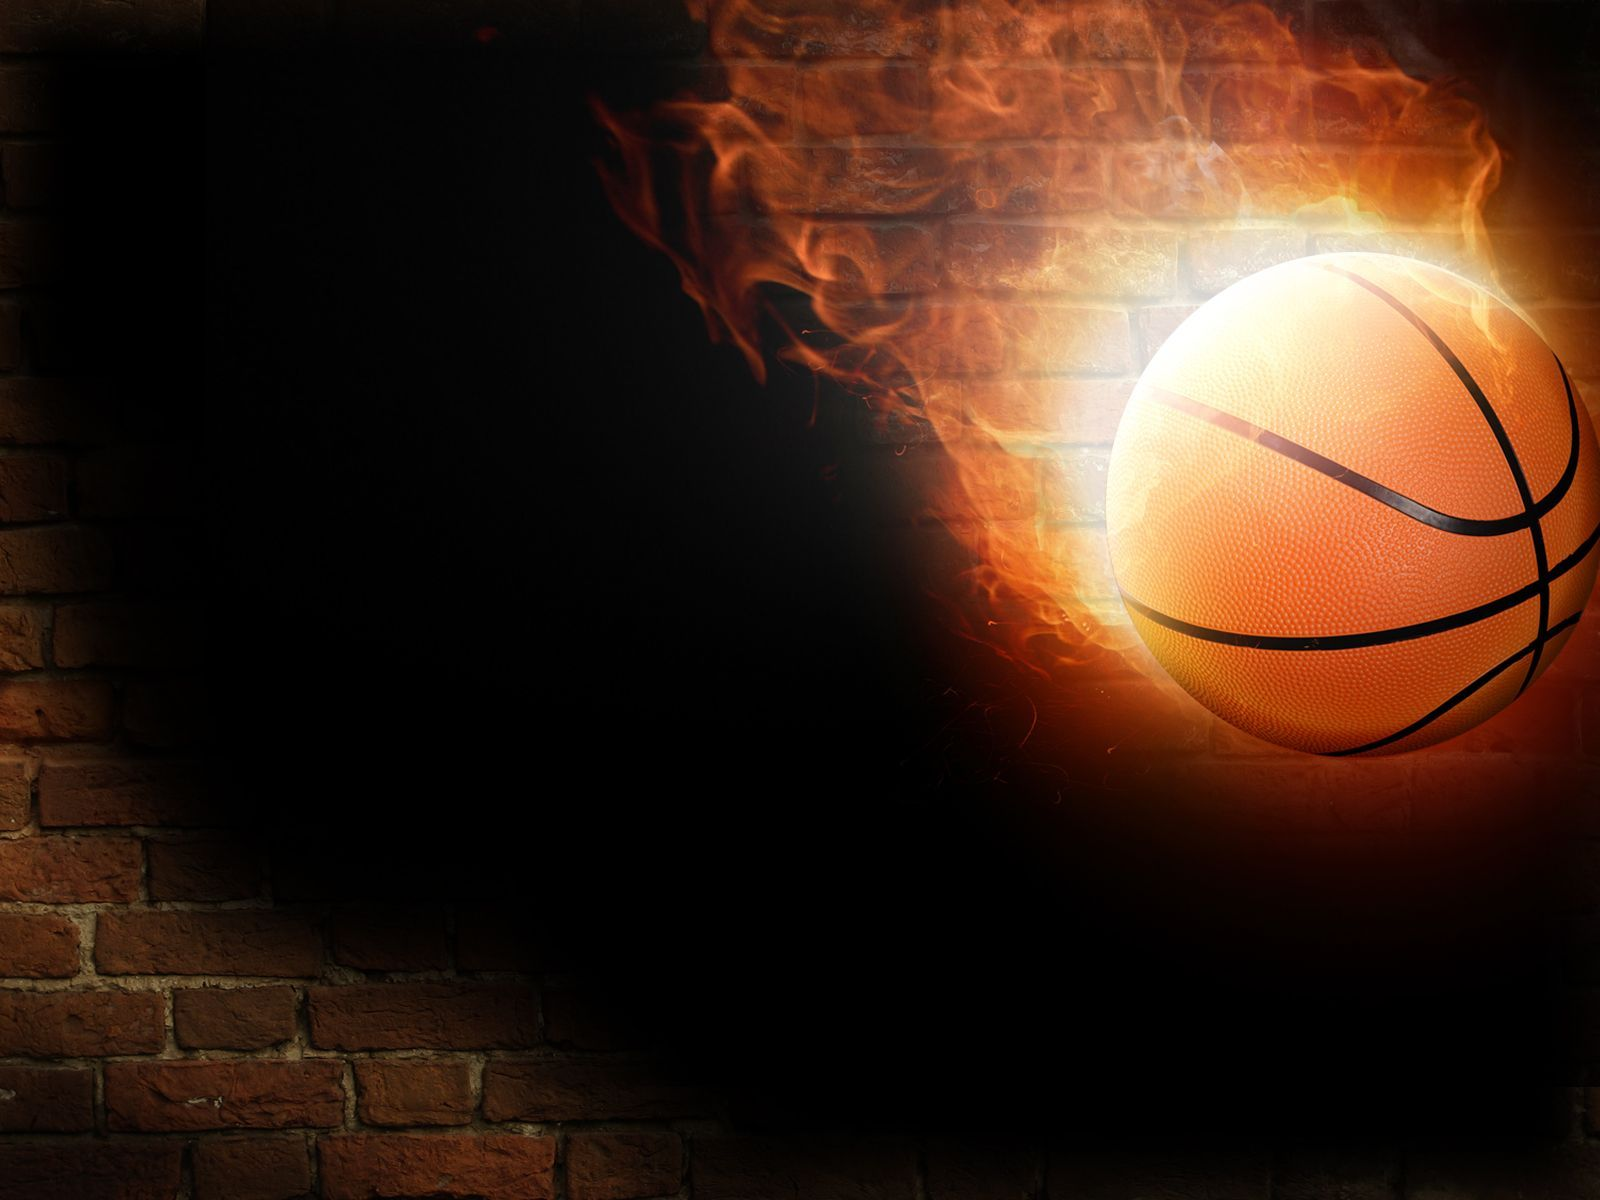 Free Basketball Backgrounds - Wallpaper Cave